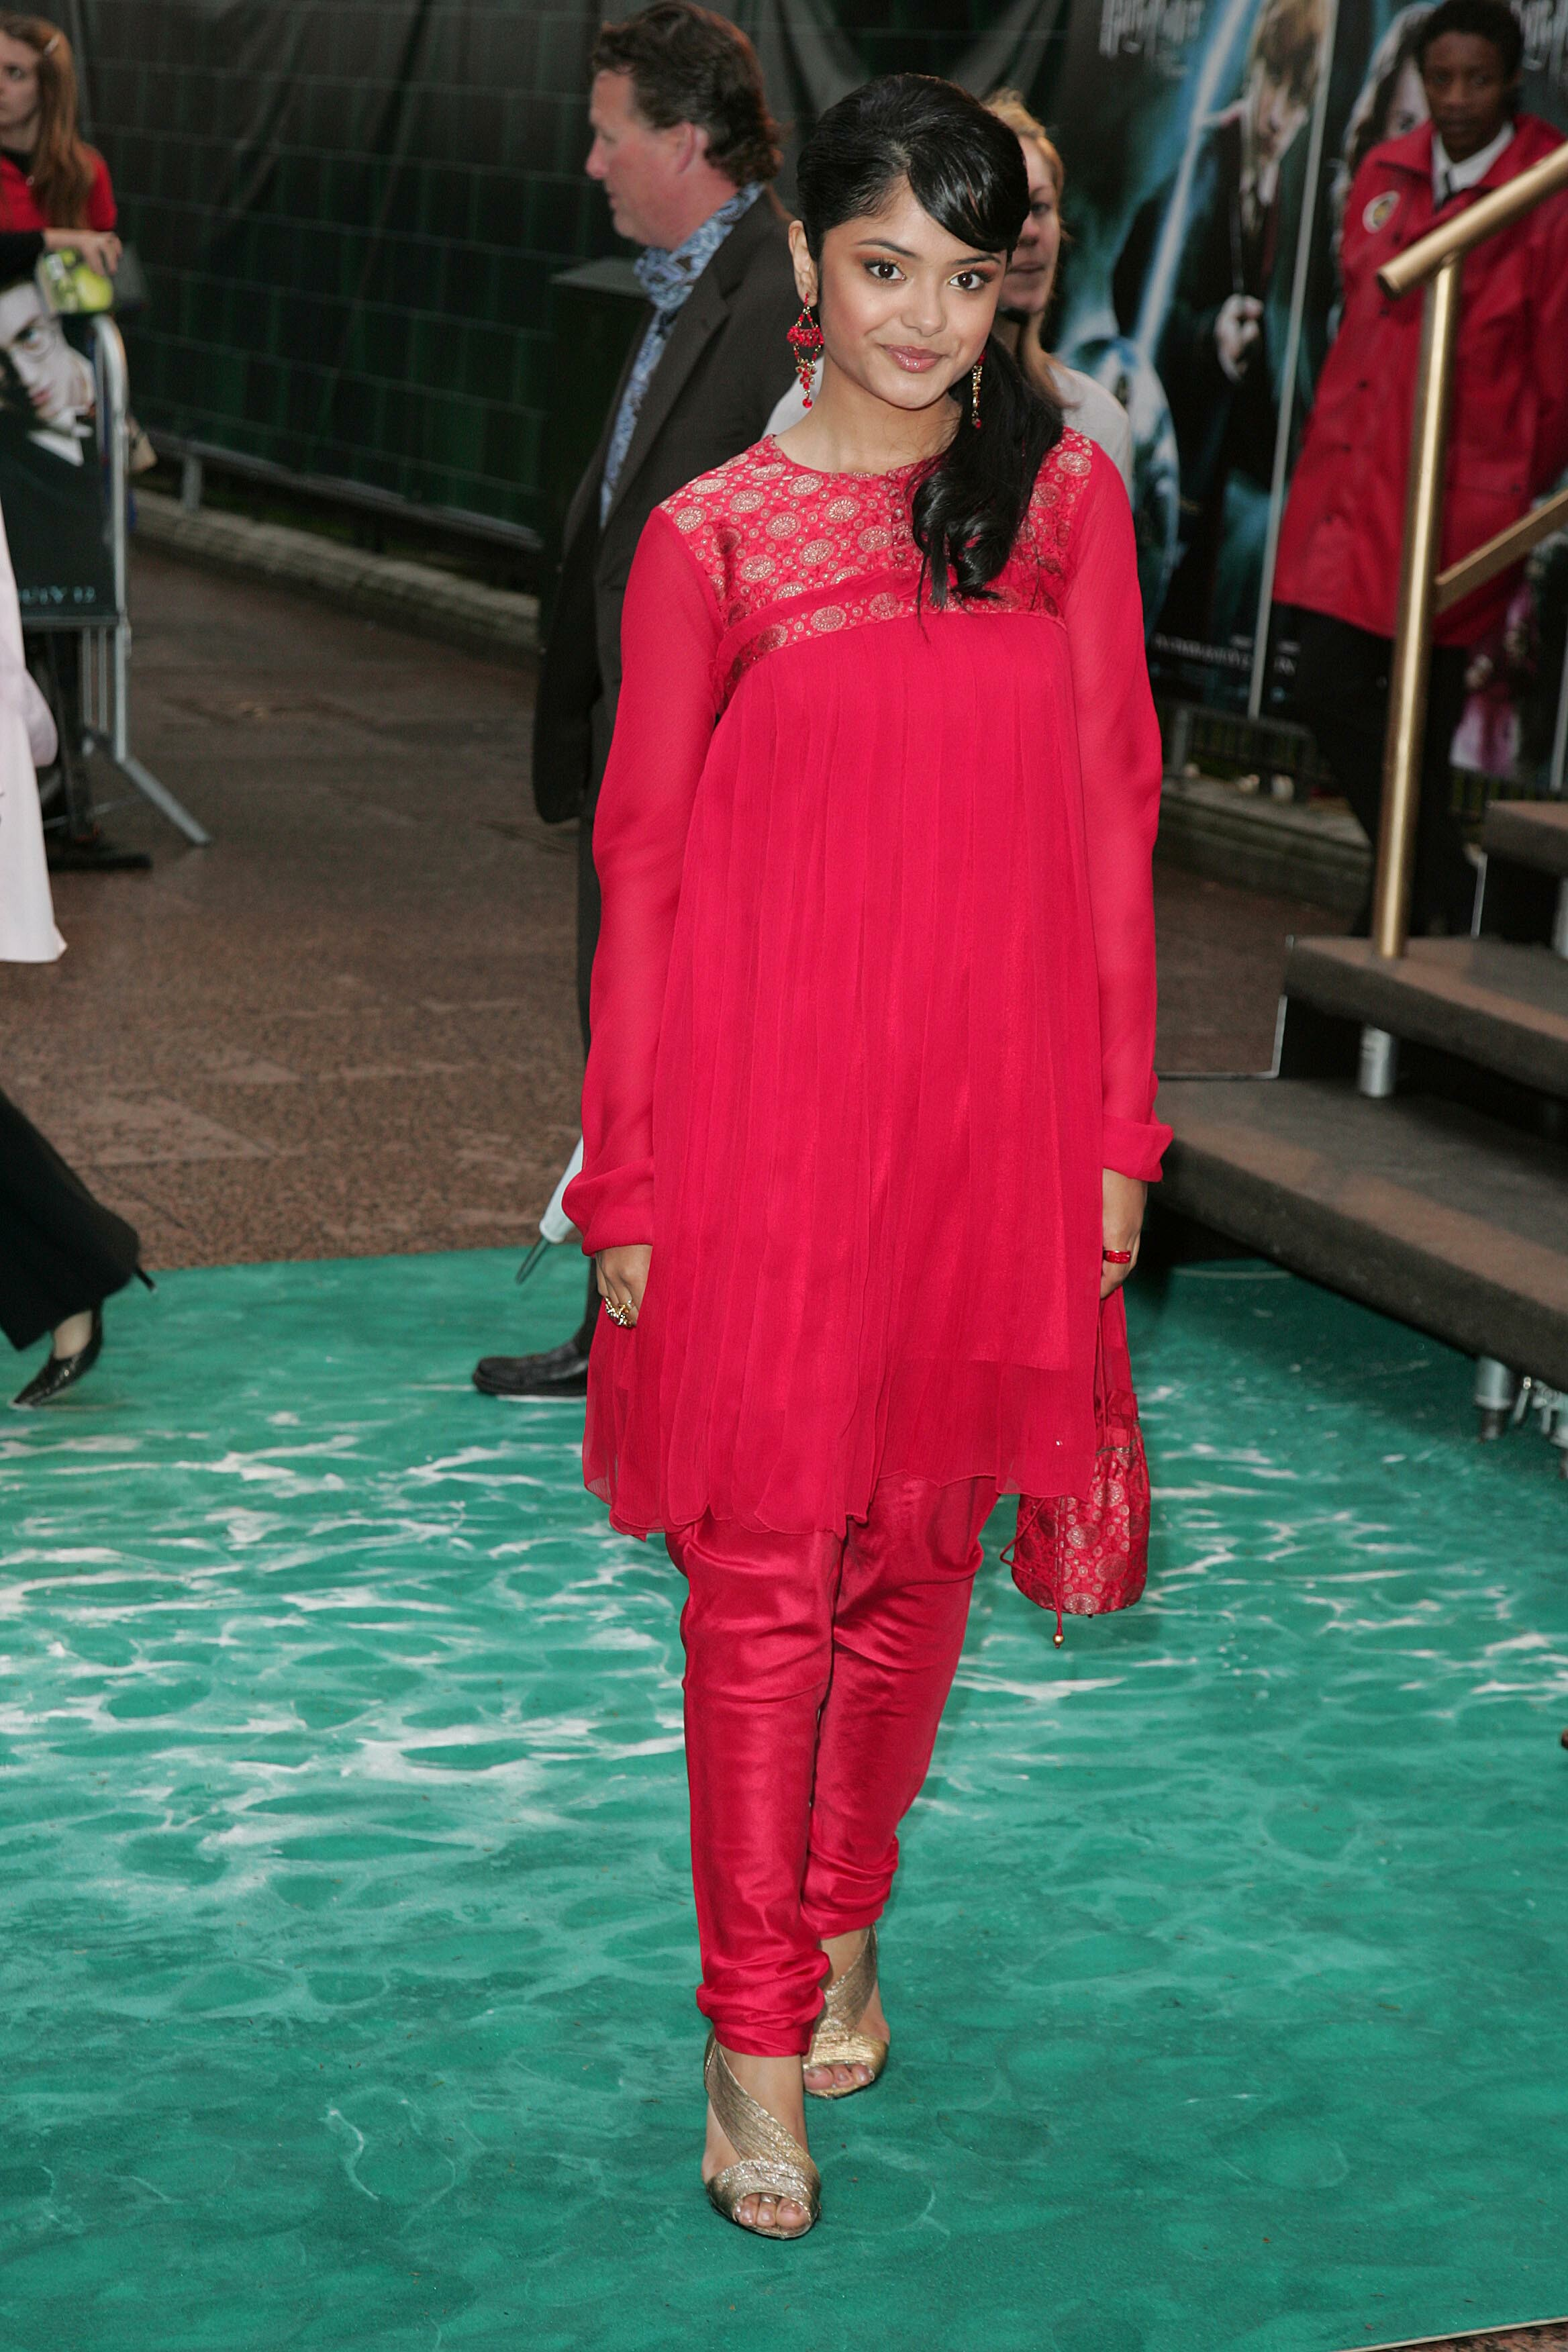 Afshan azad photo 3 of 5 pics hd wallpapers afshan azad photo 3 of 5 pics altavistaventures Choice Image